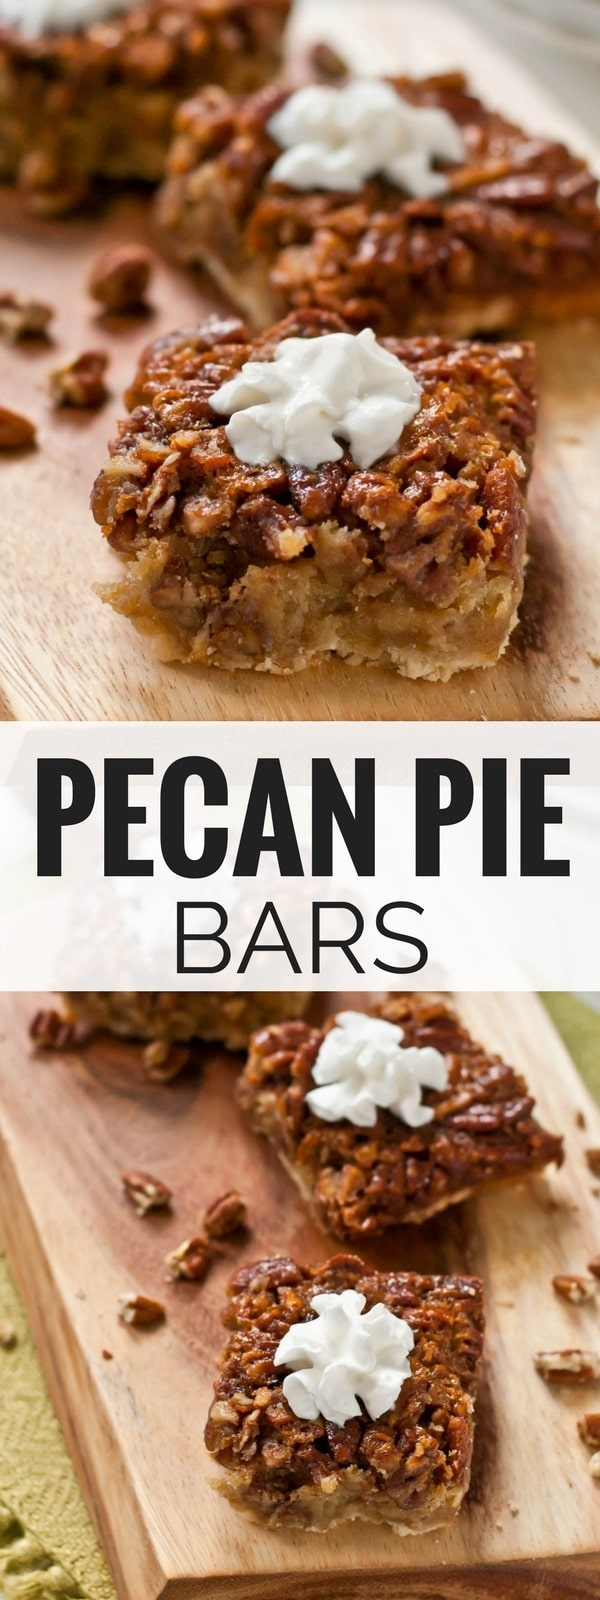 These Pecan Pie Bars give you all the taste of a gooey pecan pie with half the work!